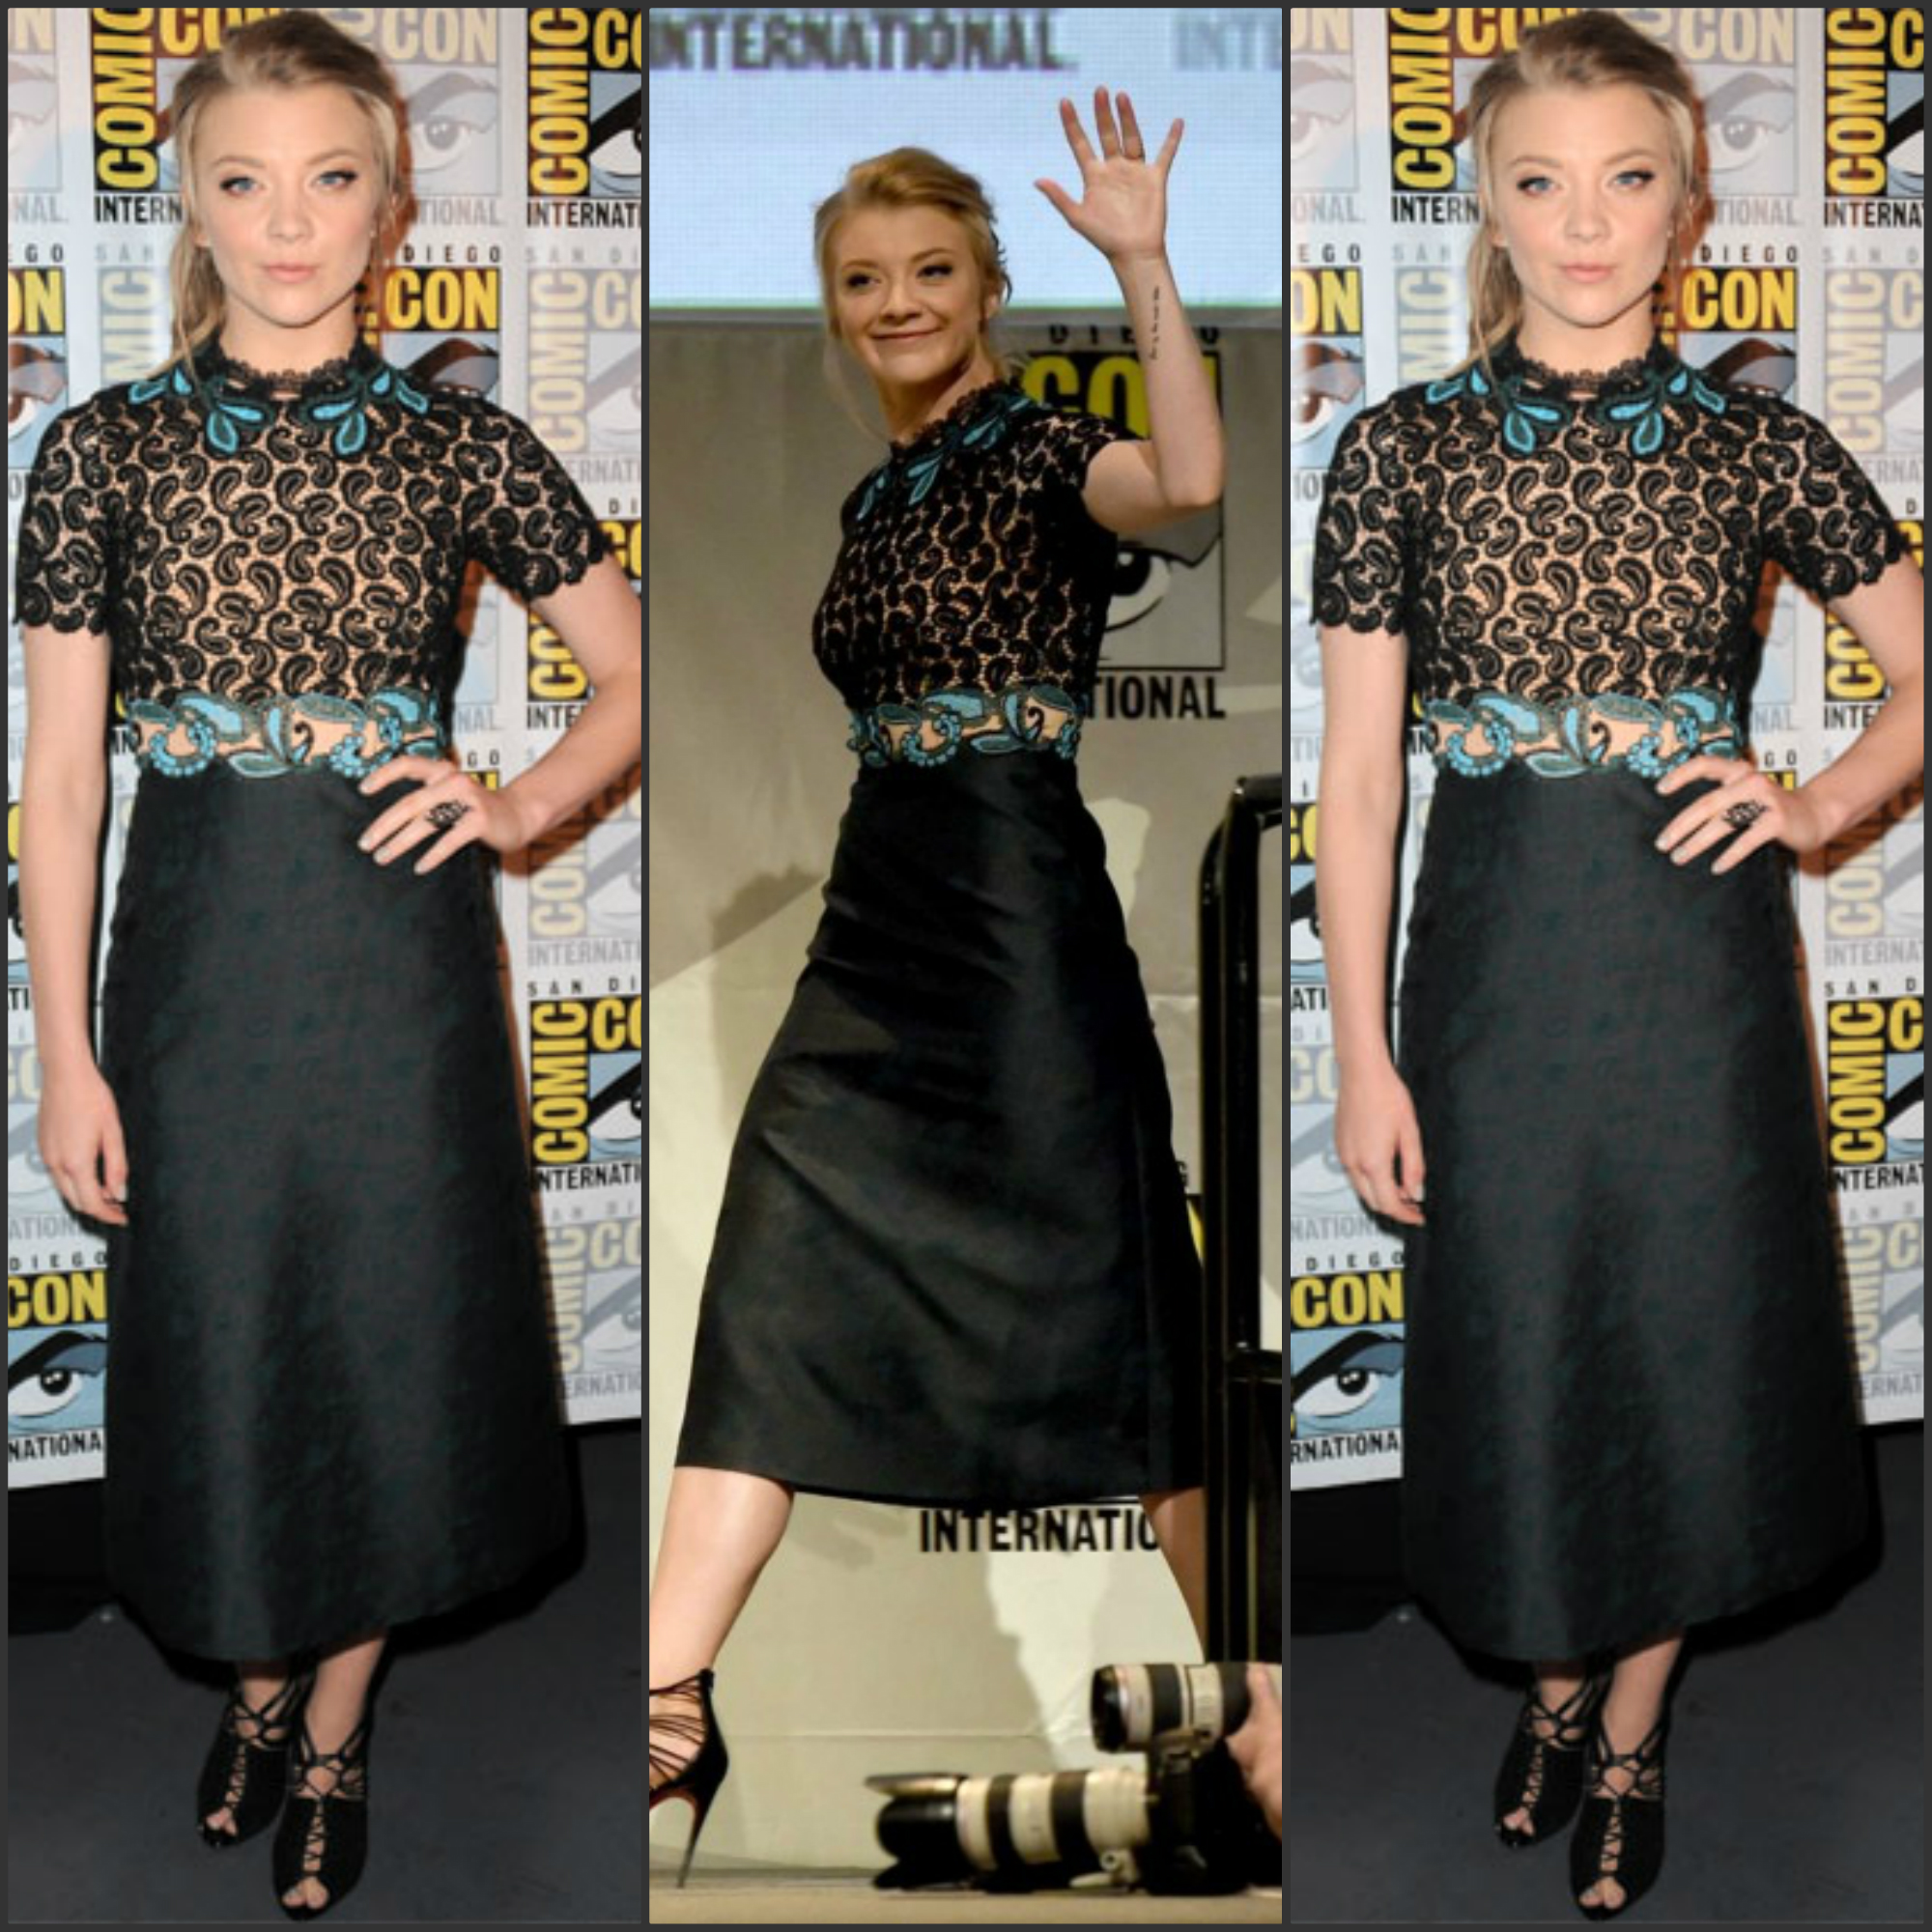 natalie-dormer-in-mary-katrantzou-patient-zero-panel-comic-con-san-diego